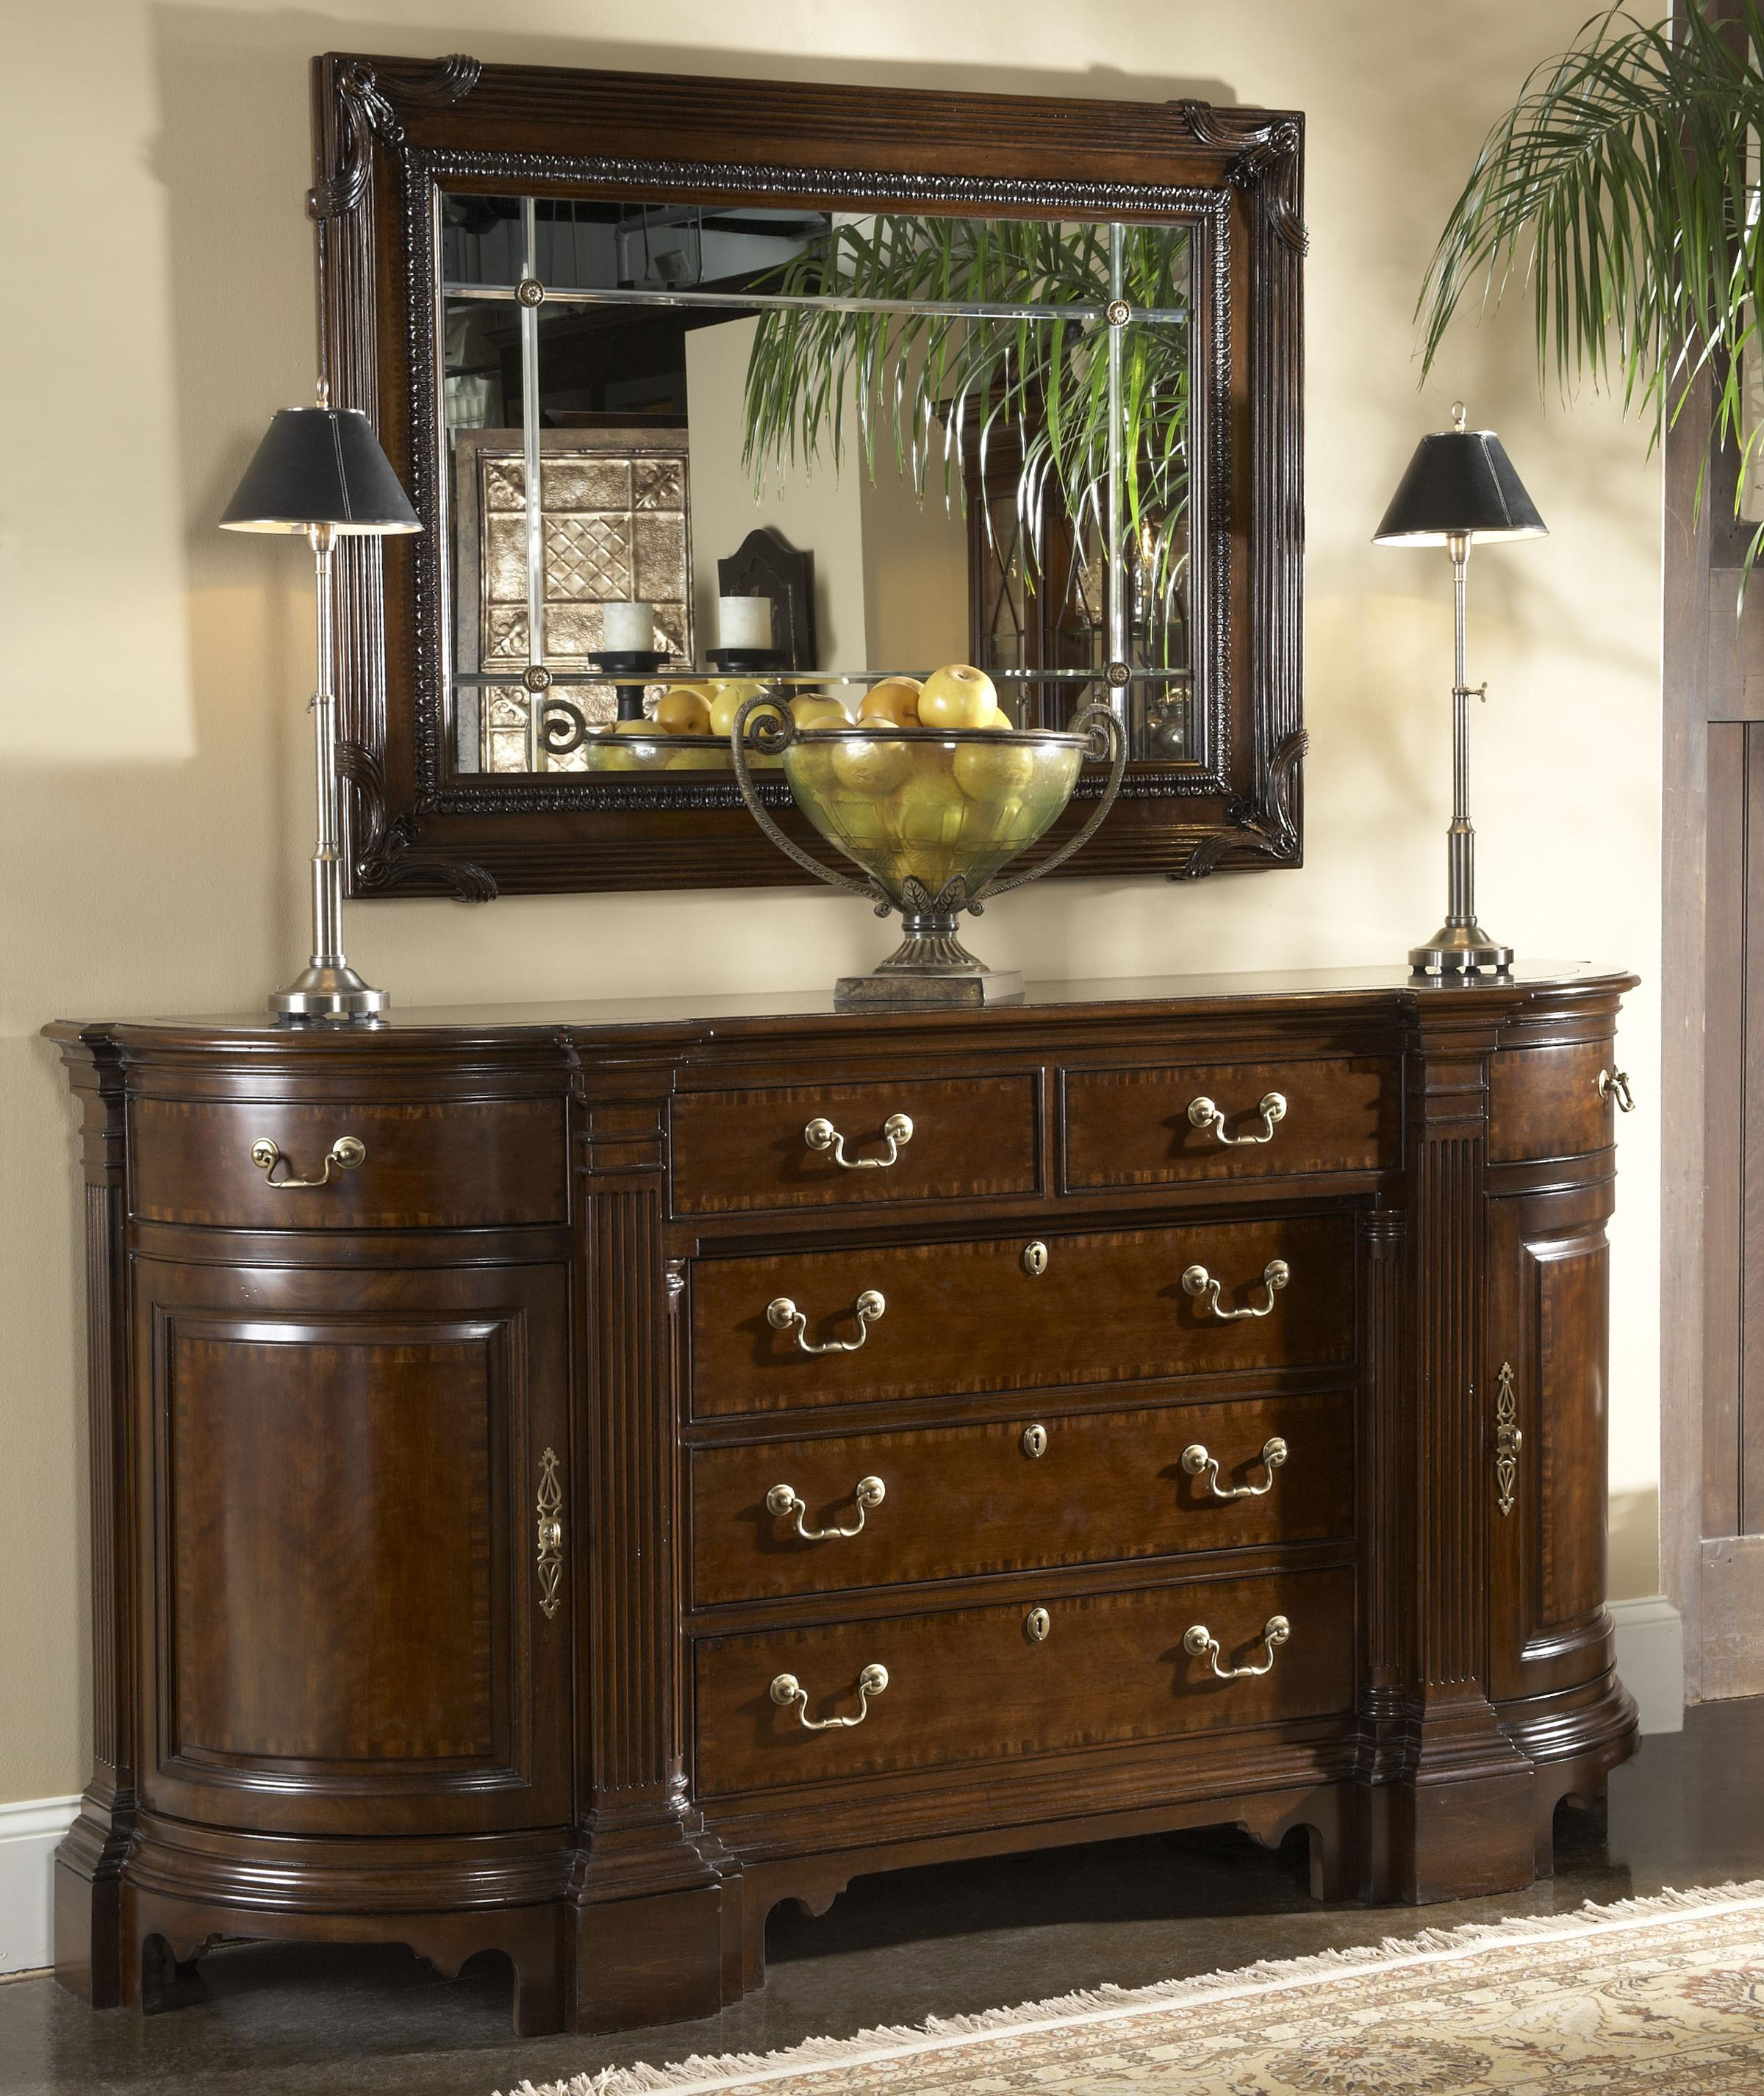 Kennett Square Credenza With Black Granite Top Insert By Fine Furniture Design Wolf And